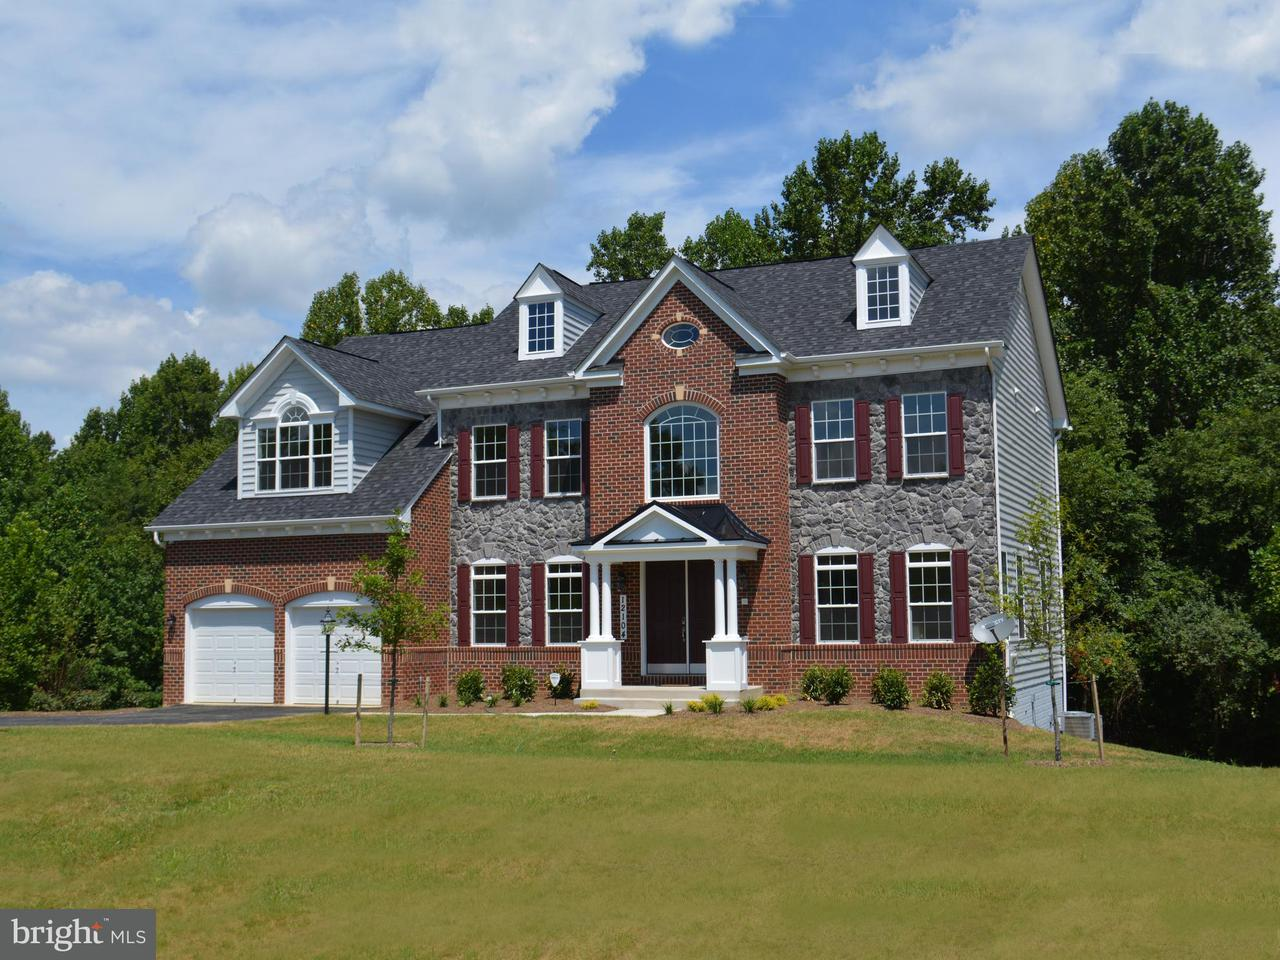 Single Family Home for Sale at 7085 Newberry Drive 7085 Newberry Drive Columbia, Maryland 21044 United States